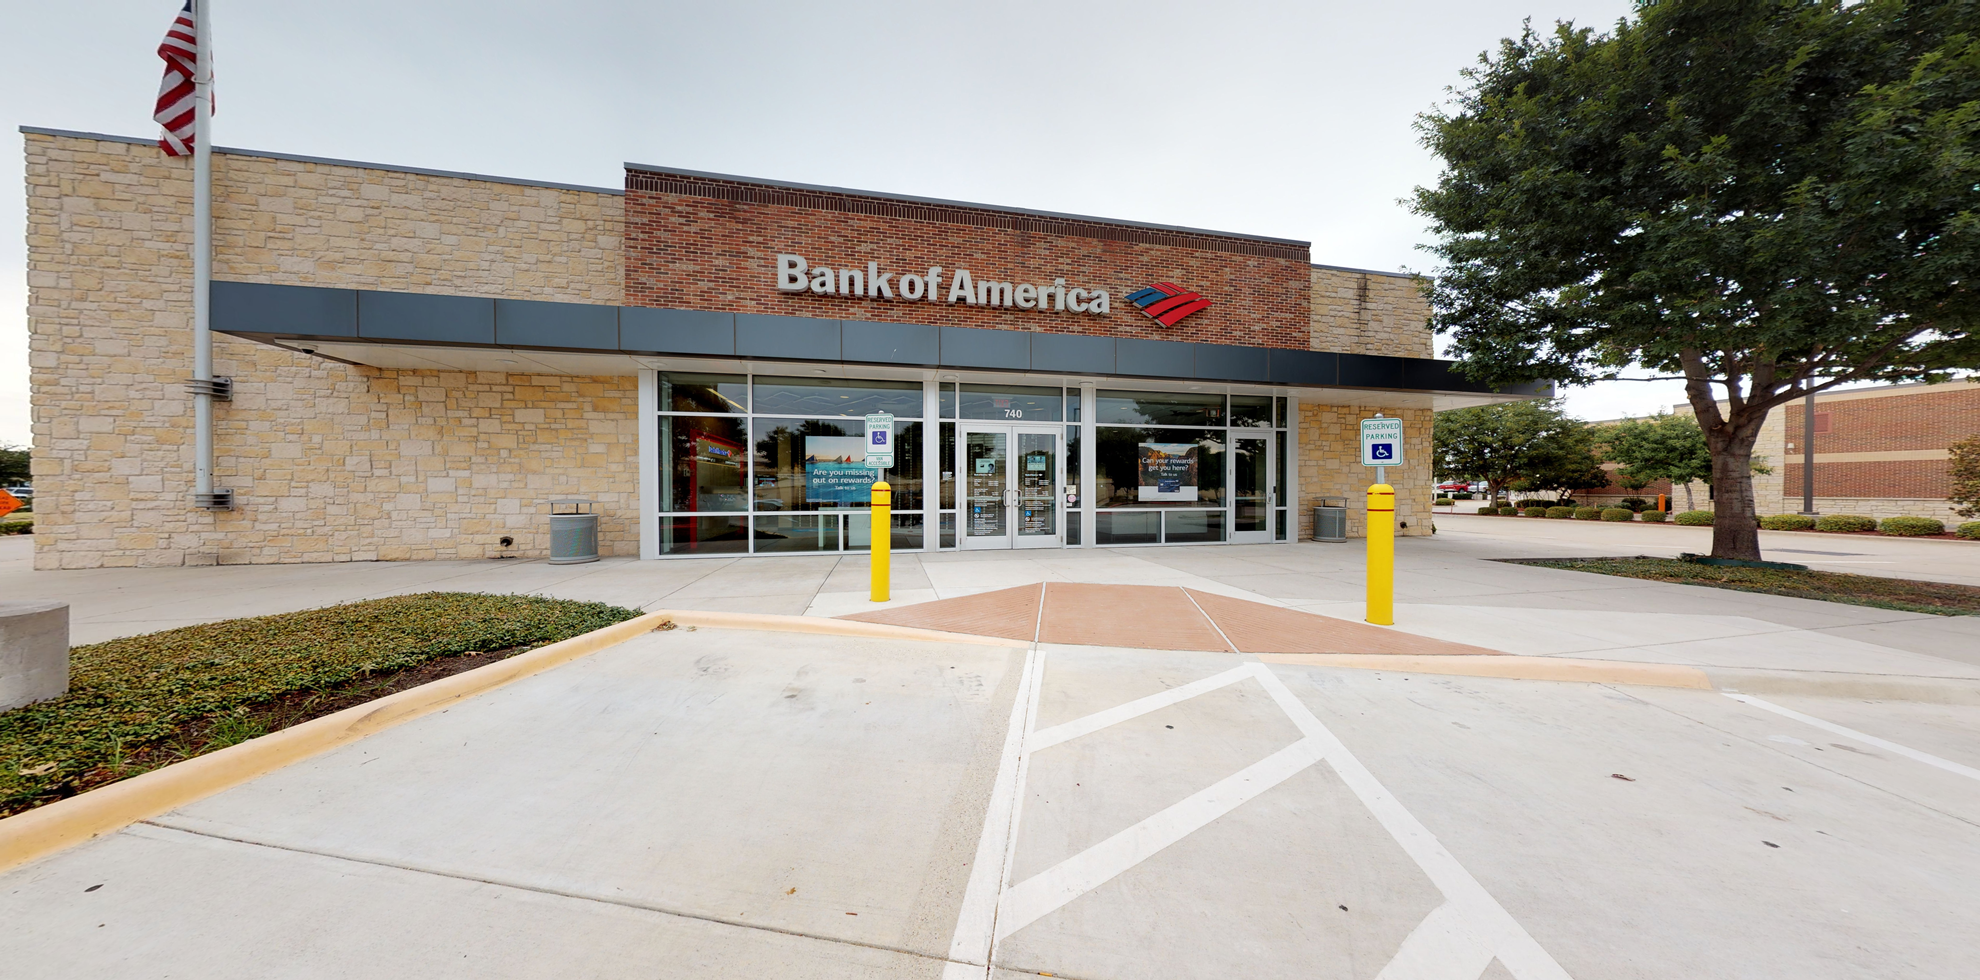 Bank of America financial center with drive-thru ATM | 740 N Denton Tap Rd, Coppell, TX 75019